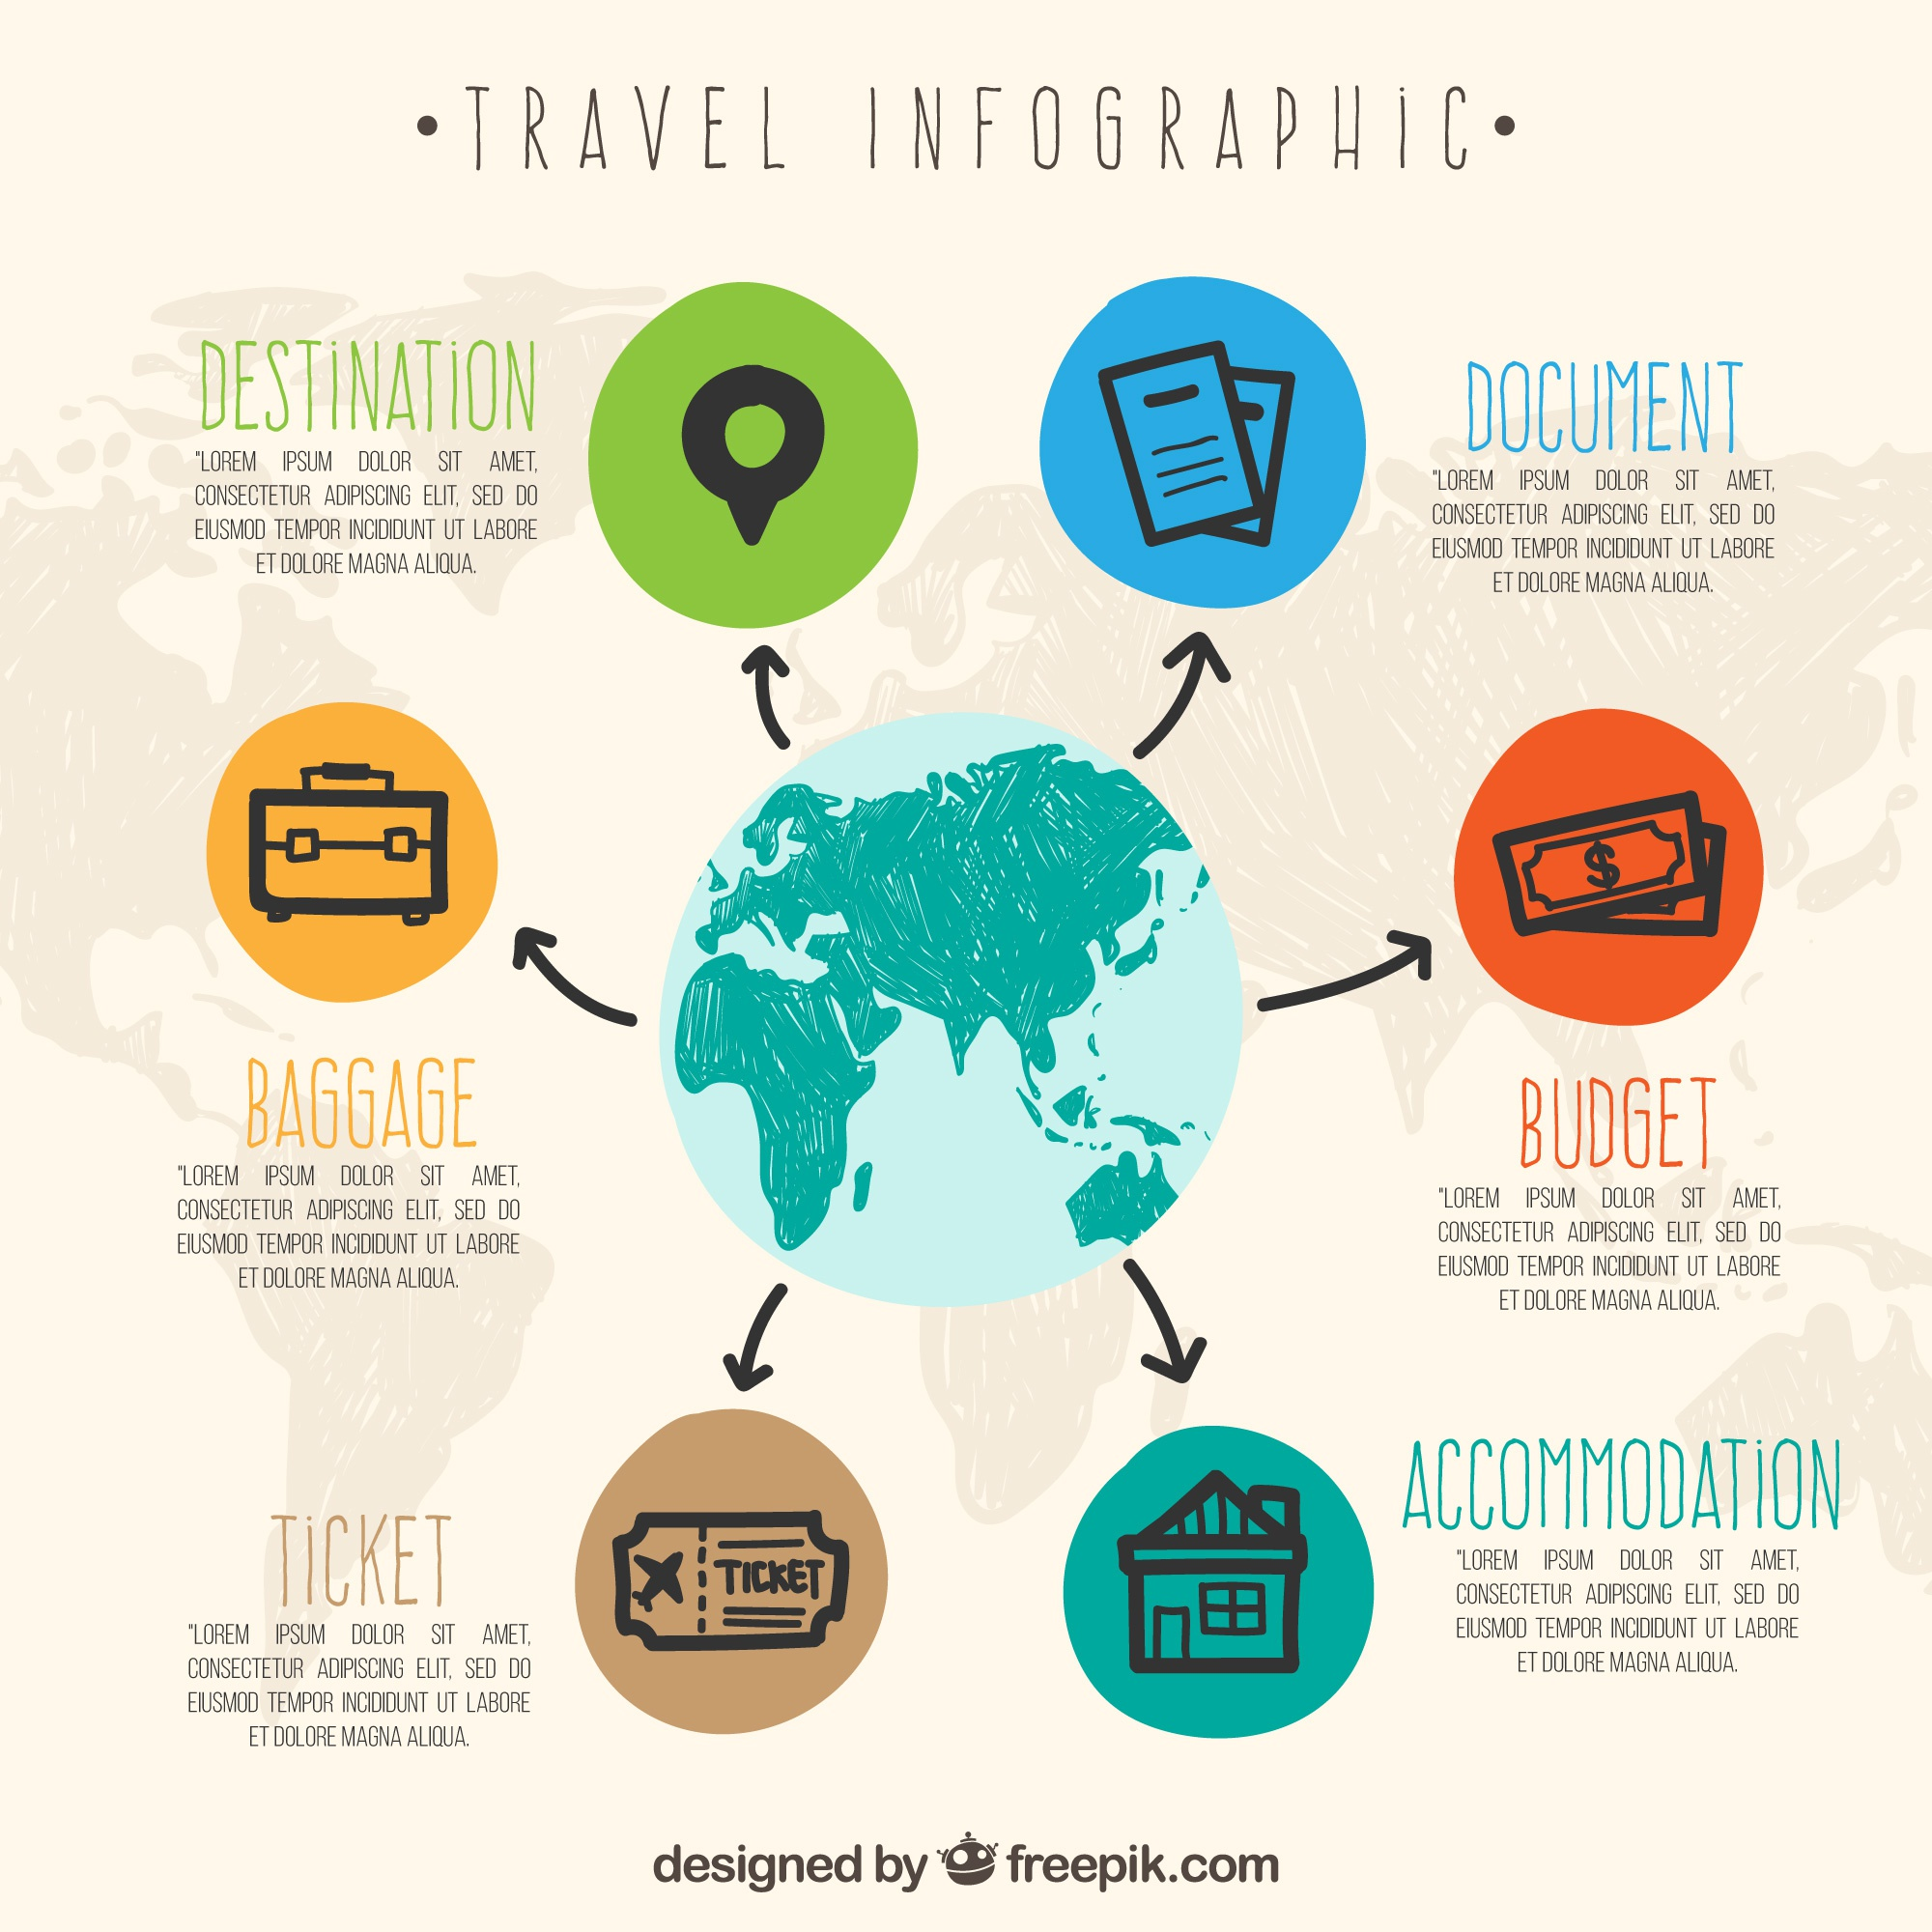 Travel infographic design